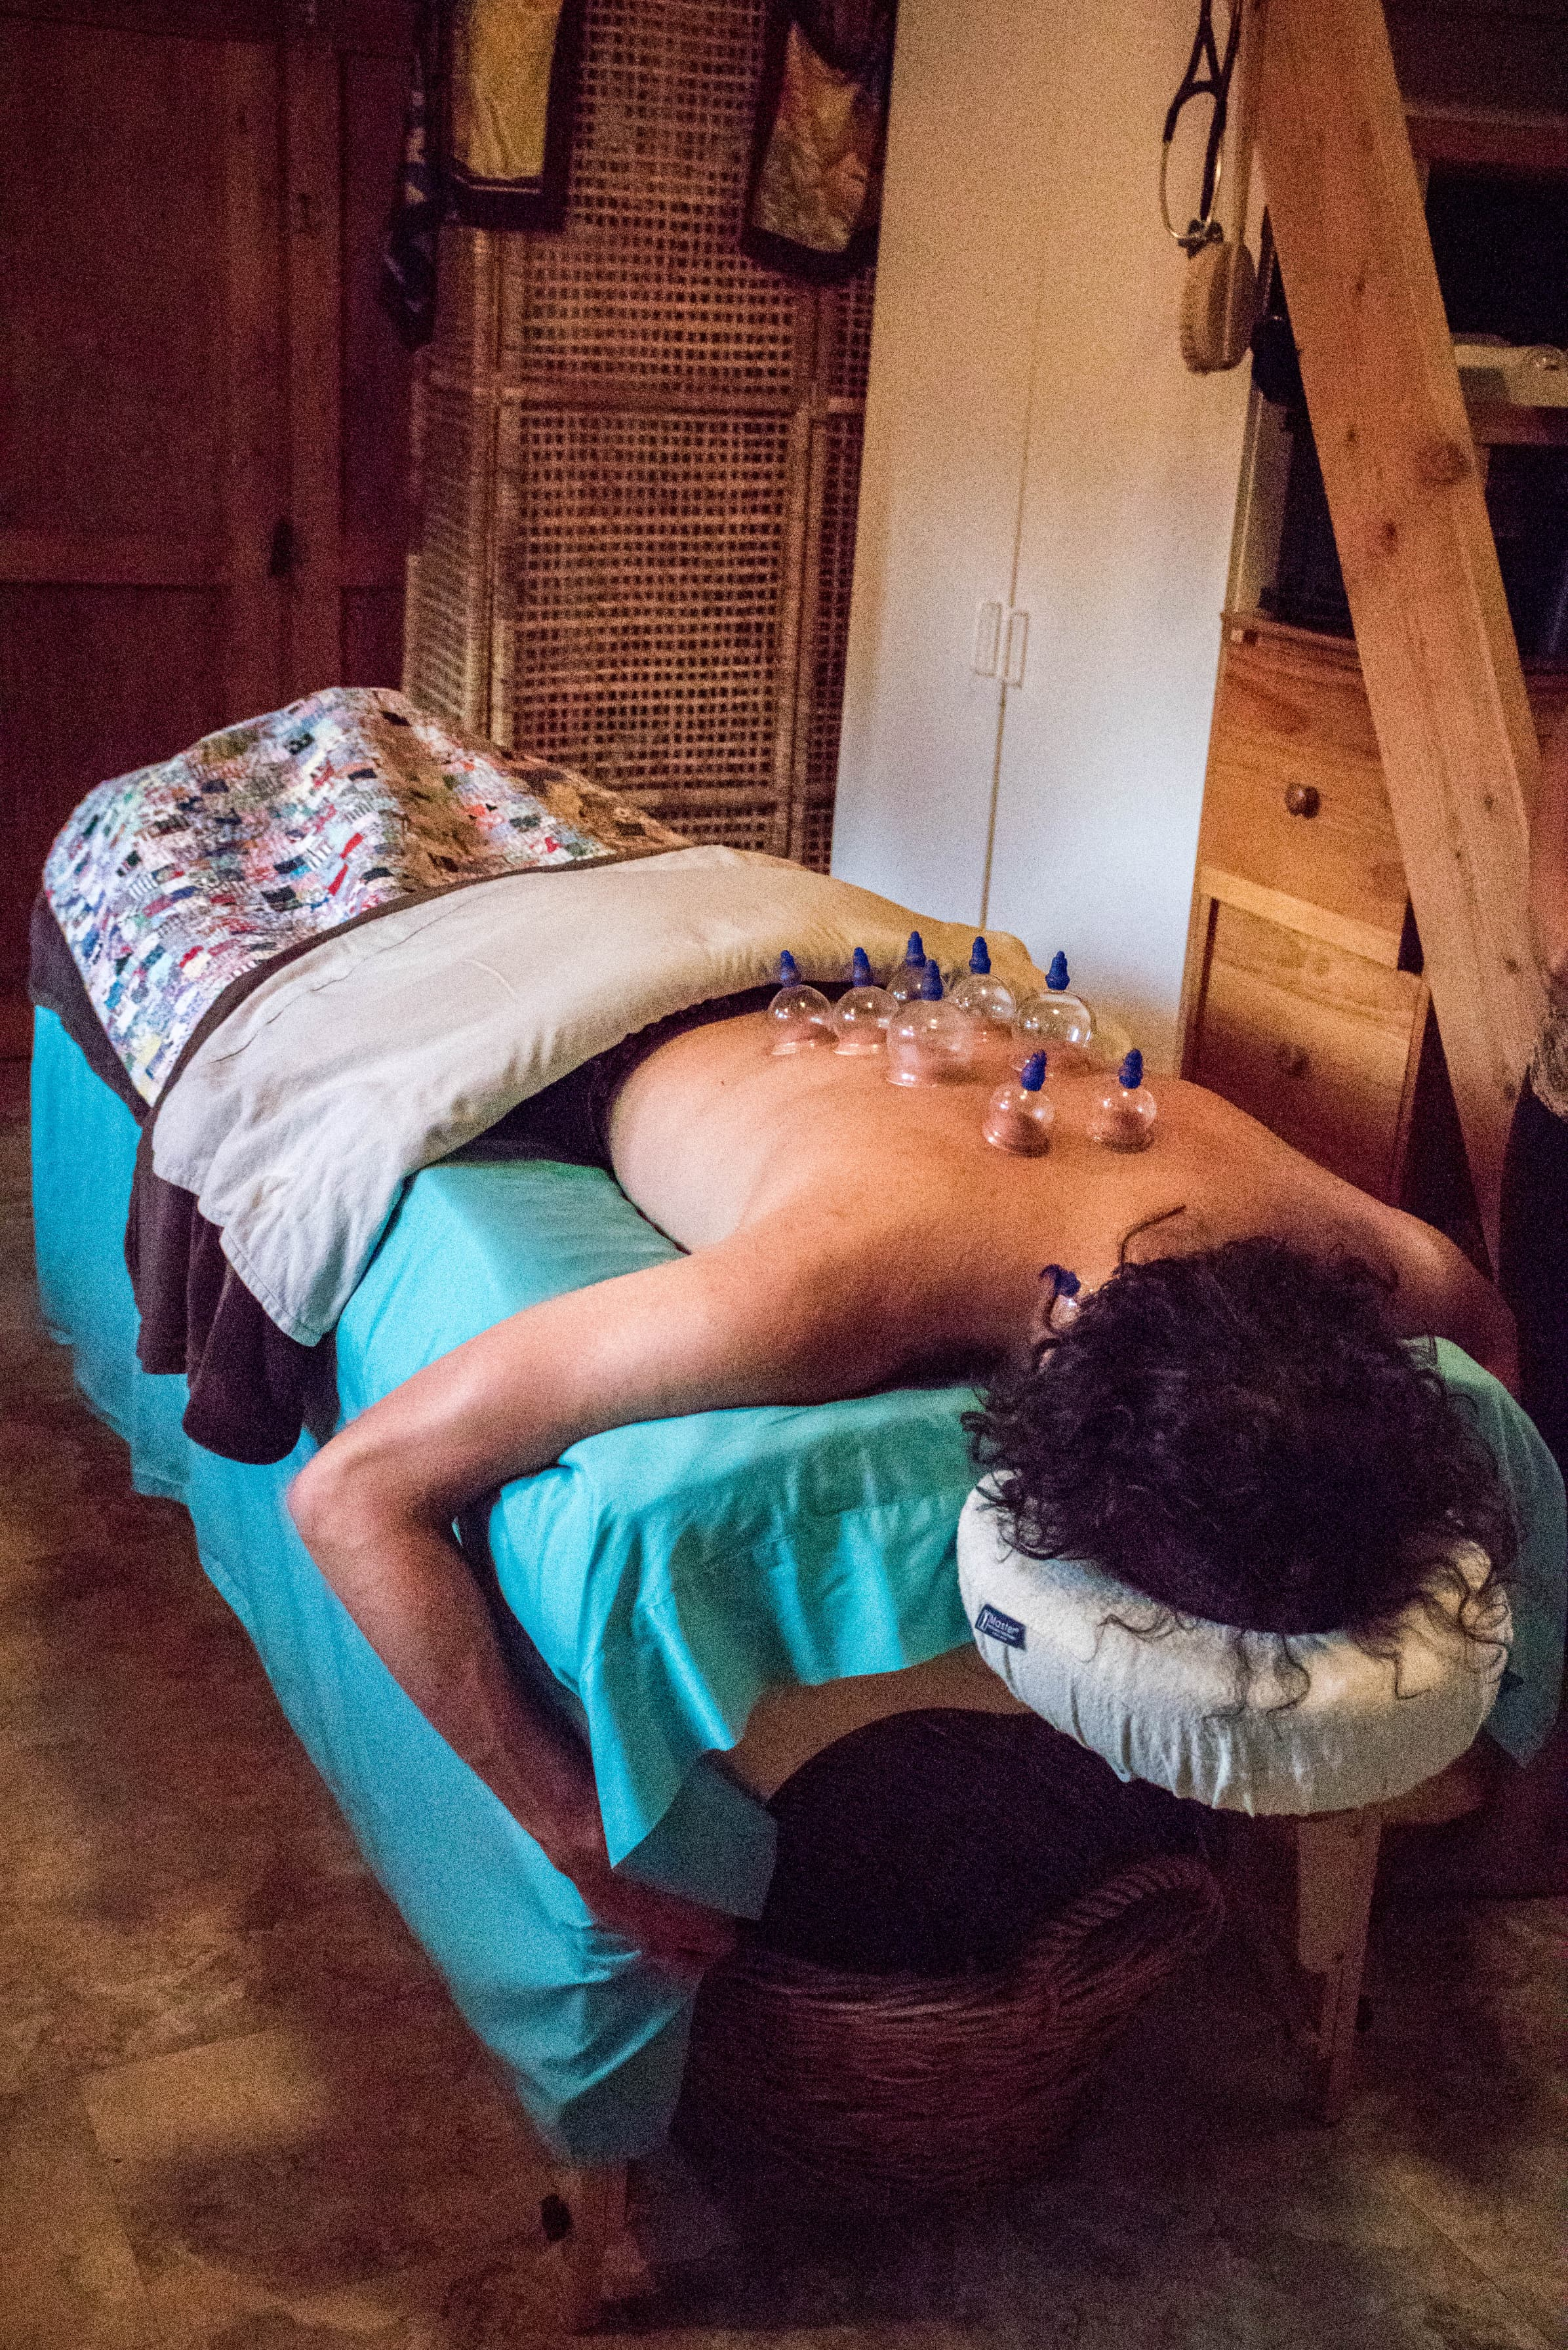 Cupping - Cuppingtherapy is an ancient form of alternative medicine in which a therapist puts special cups on your skin for a few minutes to create suction. People get it for many purposes, including to help with pain, inflammation, blood flow, relaxation and well-being, and as a type of deep-tissue massage (info from WebMD.)Patient receiving cupping for acute back pain in Dr. Alicia's Home Office. Photo Courtesy of Happy Beautiful Wealthy.